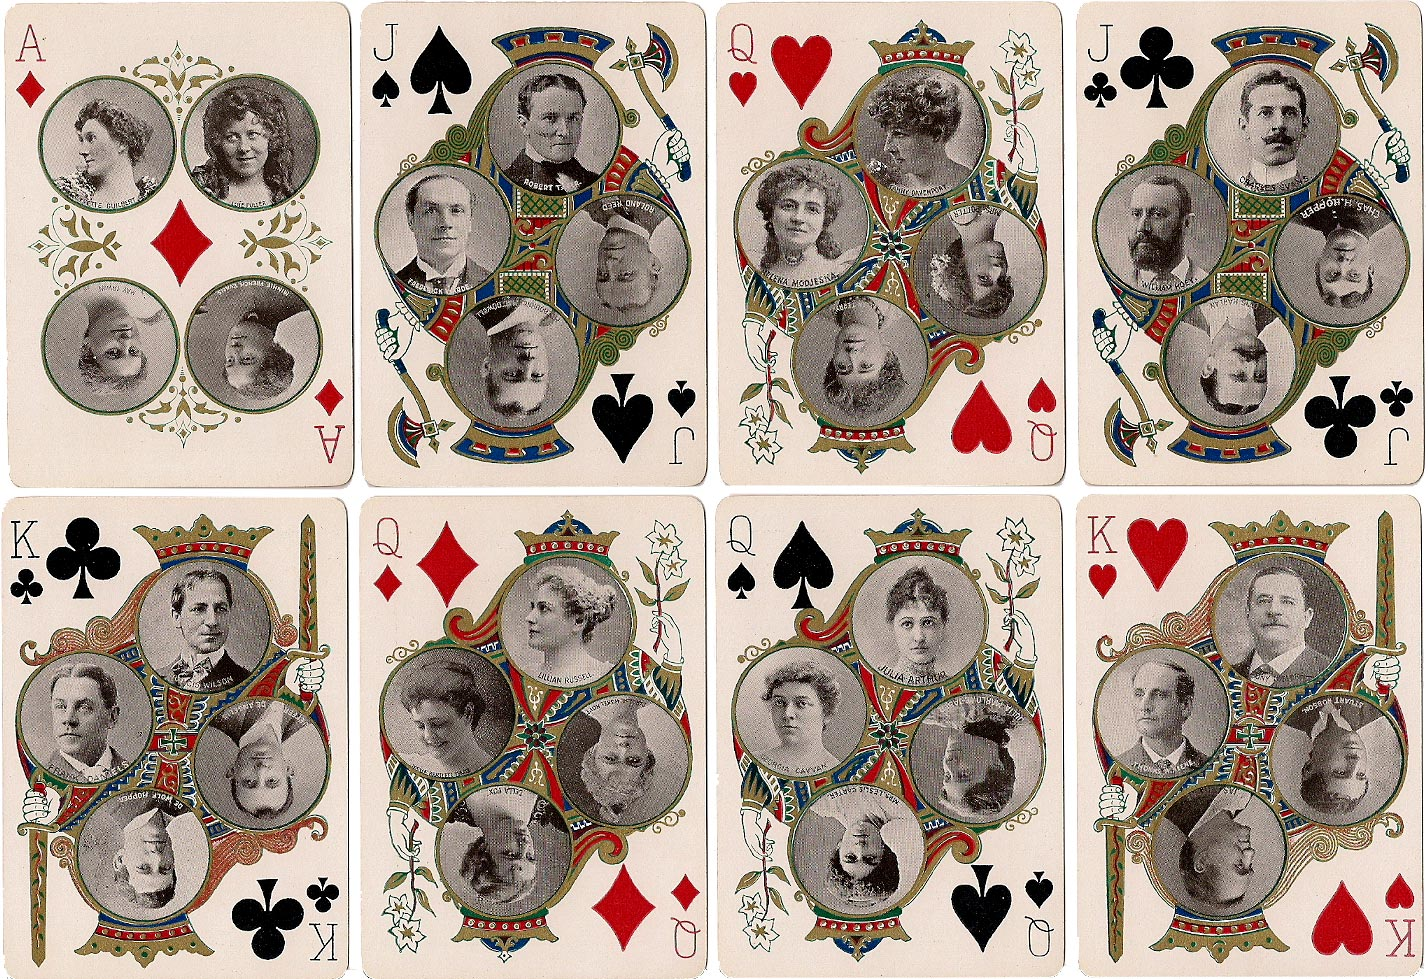 Stage No.65 playing cards published by the United States Playing Card Co., Cincinnati, 1896